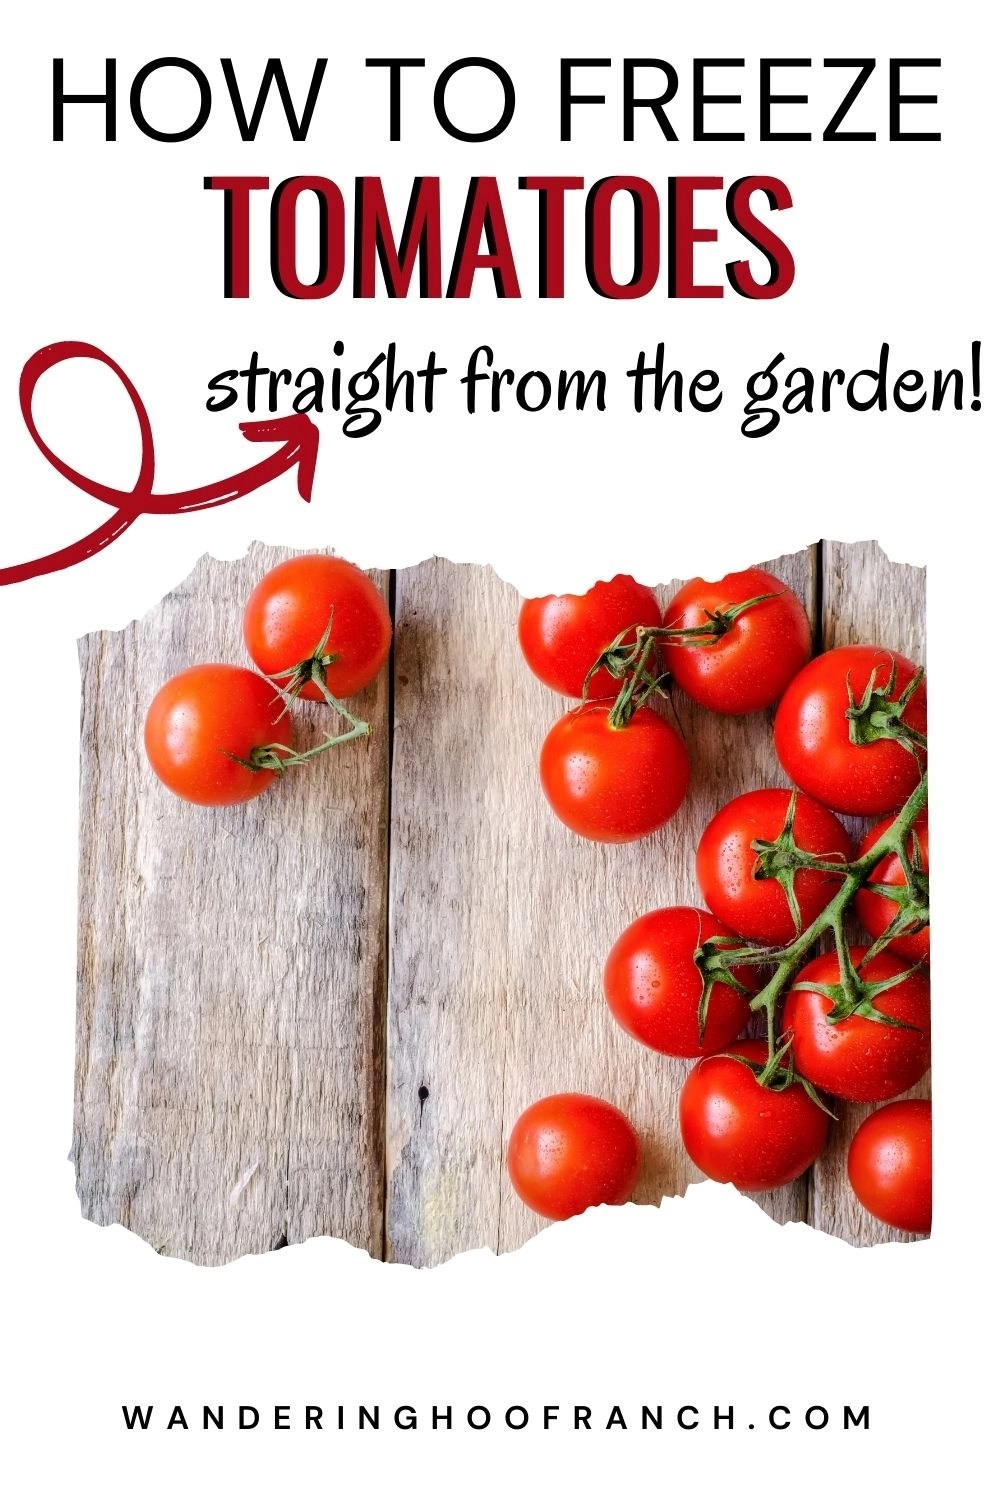 how to freeze tomatoes straight from your garden with an arrow